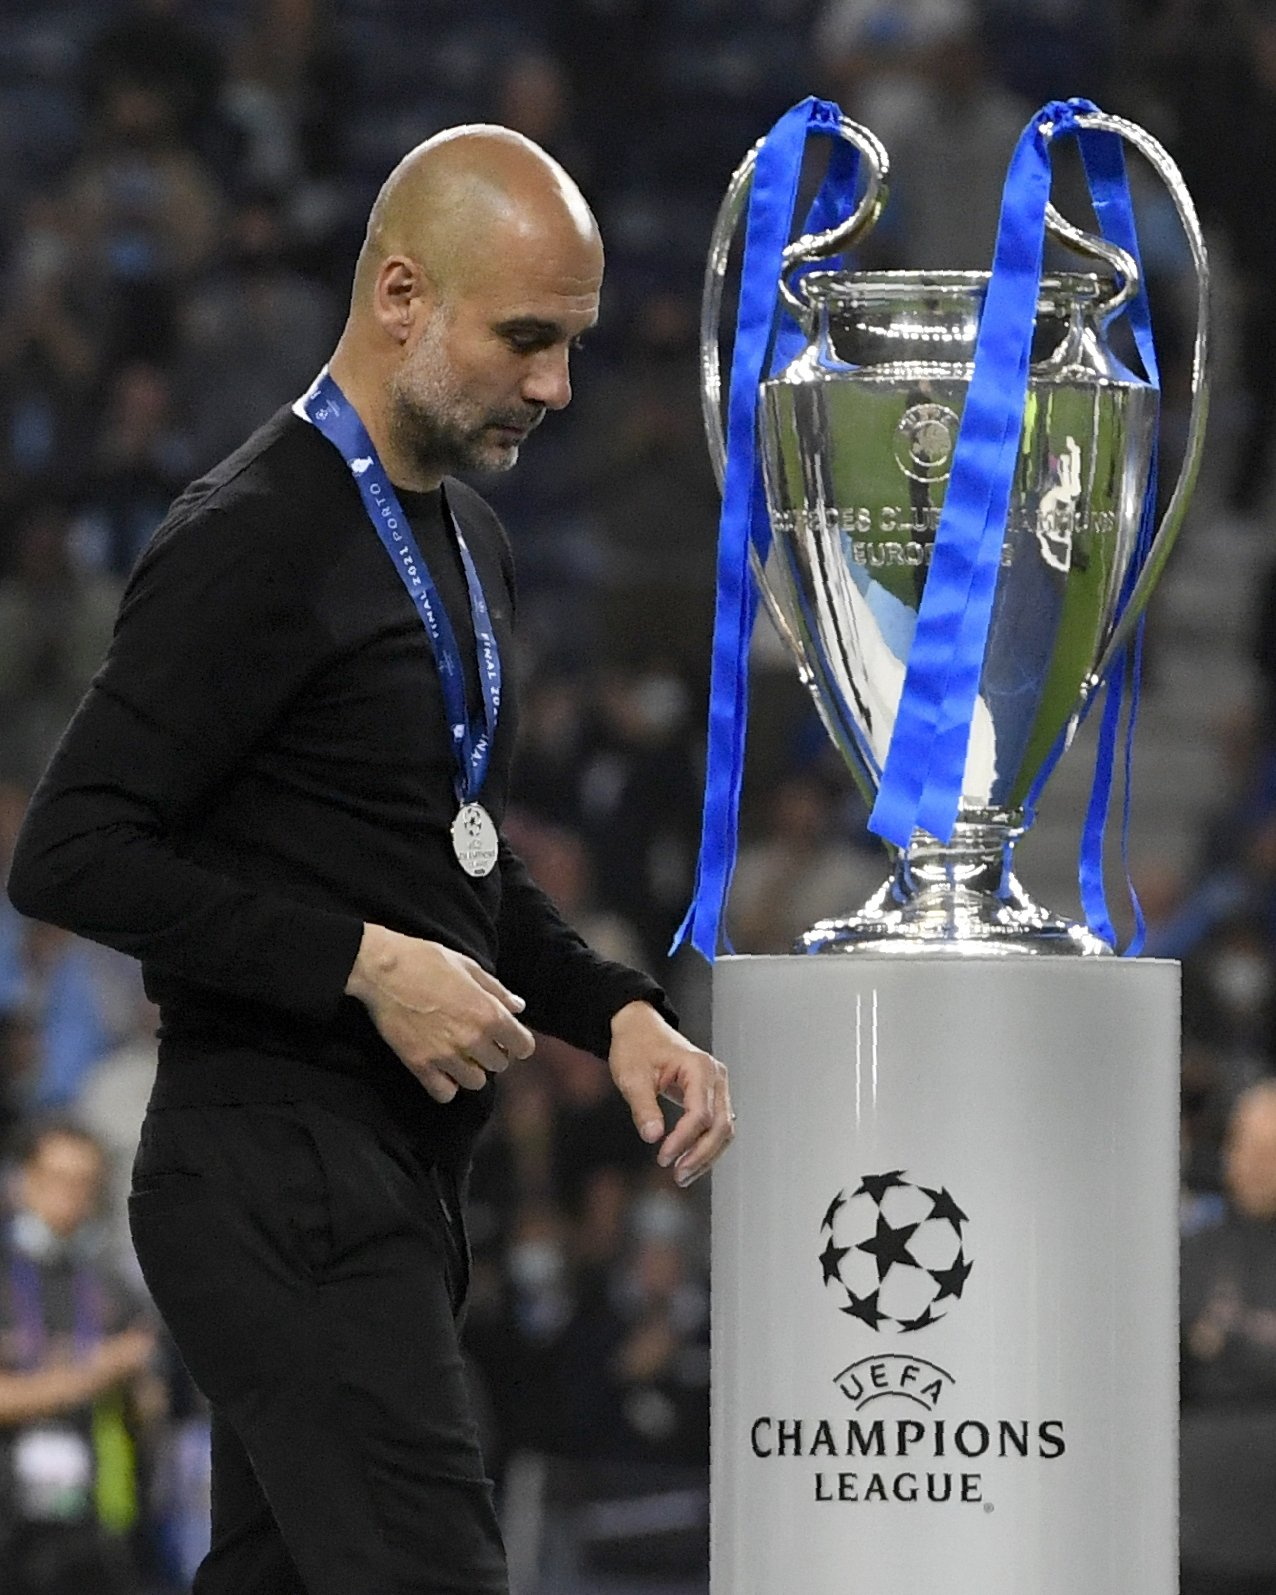 Manchester City's head coach Pep Guardiola walks past the trophy after the Champions League final match against Manchester City at Dragao Stadium in Porto, Portugal, May 29, 2021. (AP Photo)